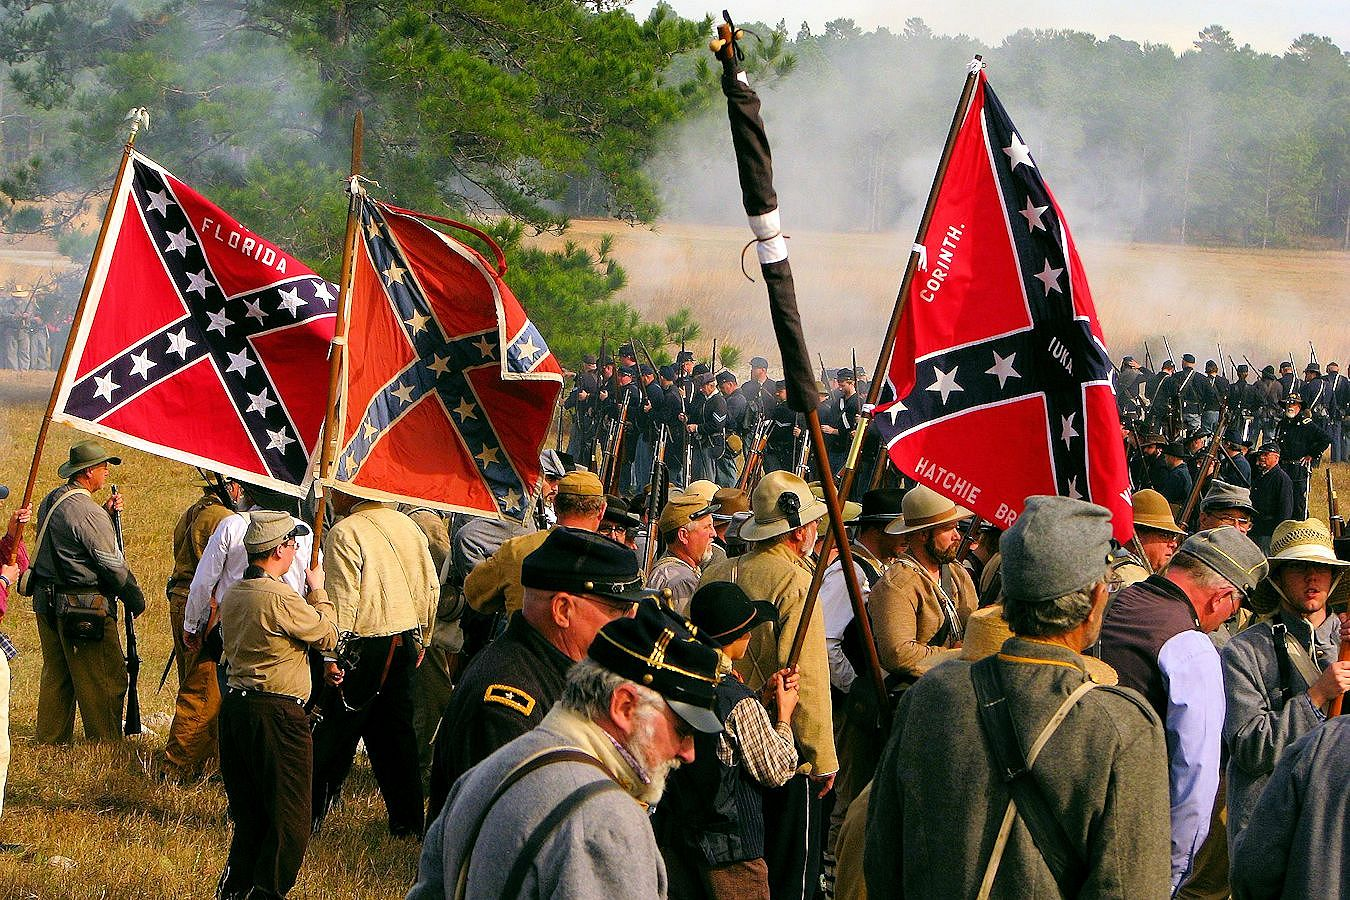 12th Georgia Civil War Reenactment Group